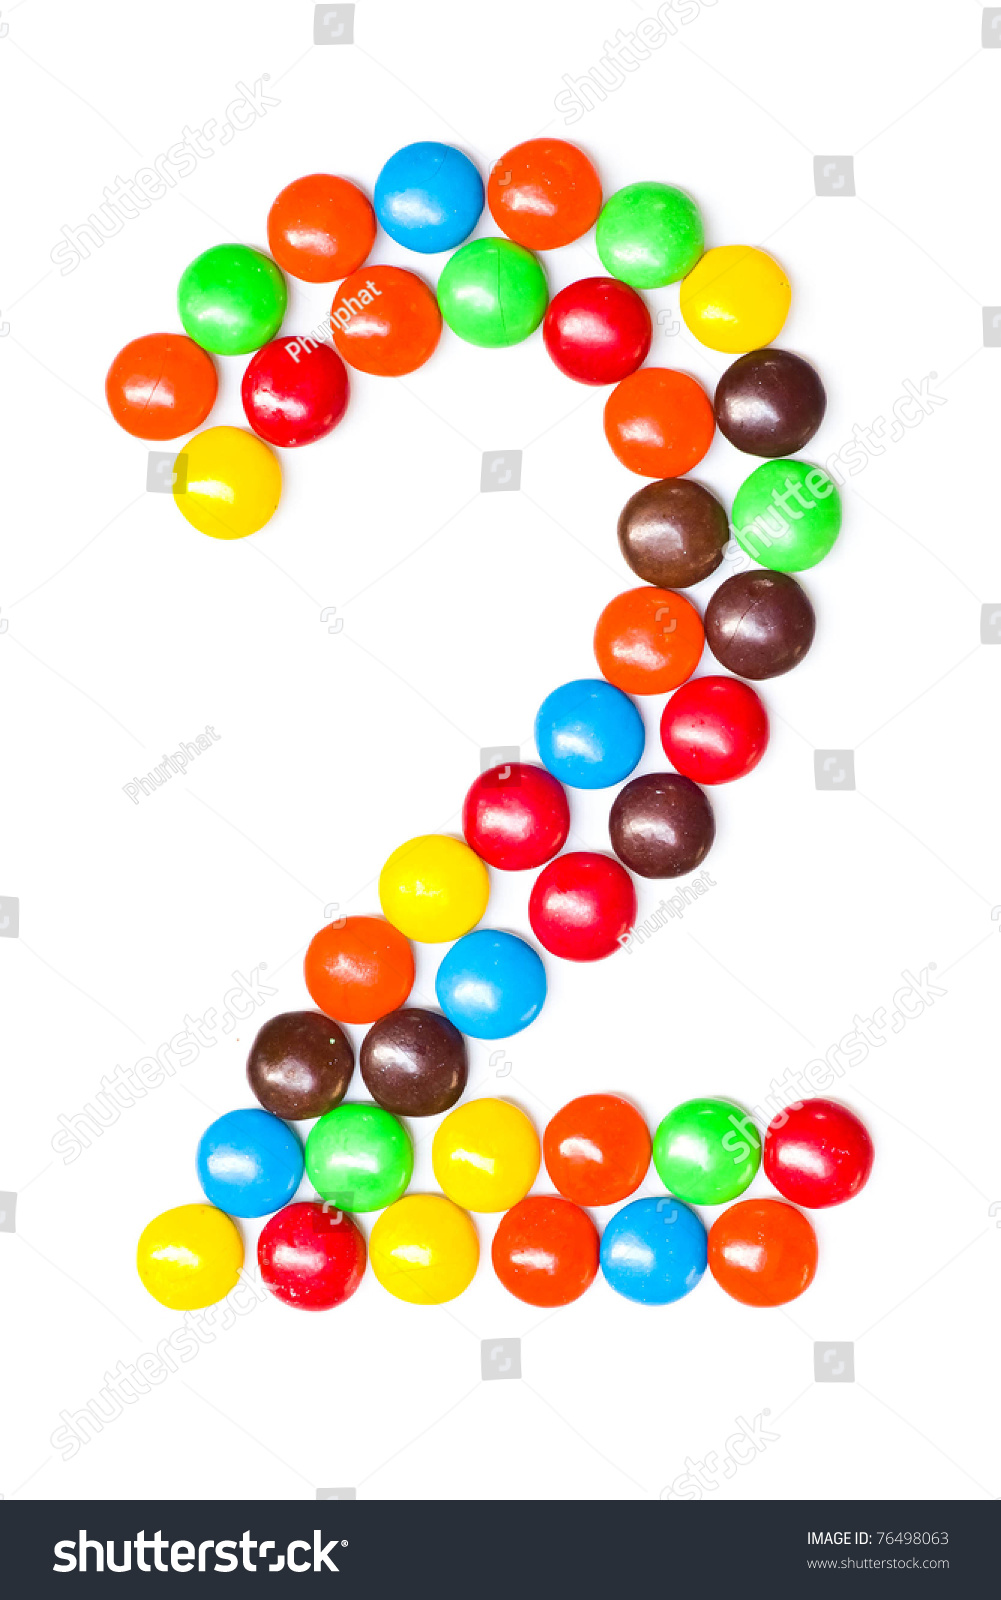 Colorful Candy Number 2 Stock Photo 76498063 - Shutterstock